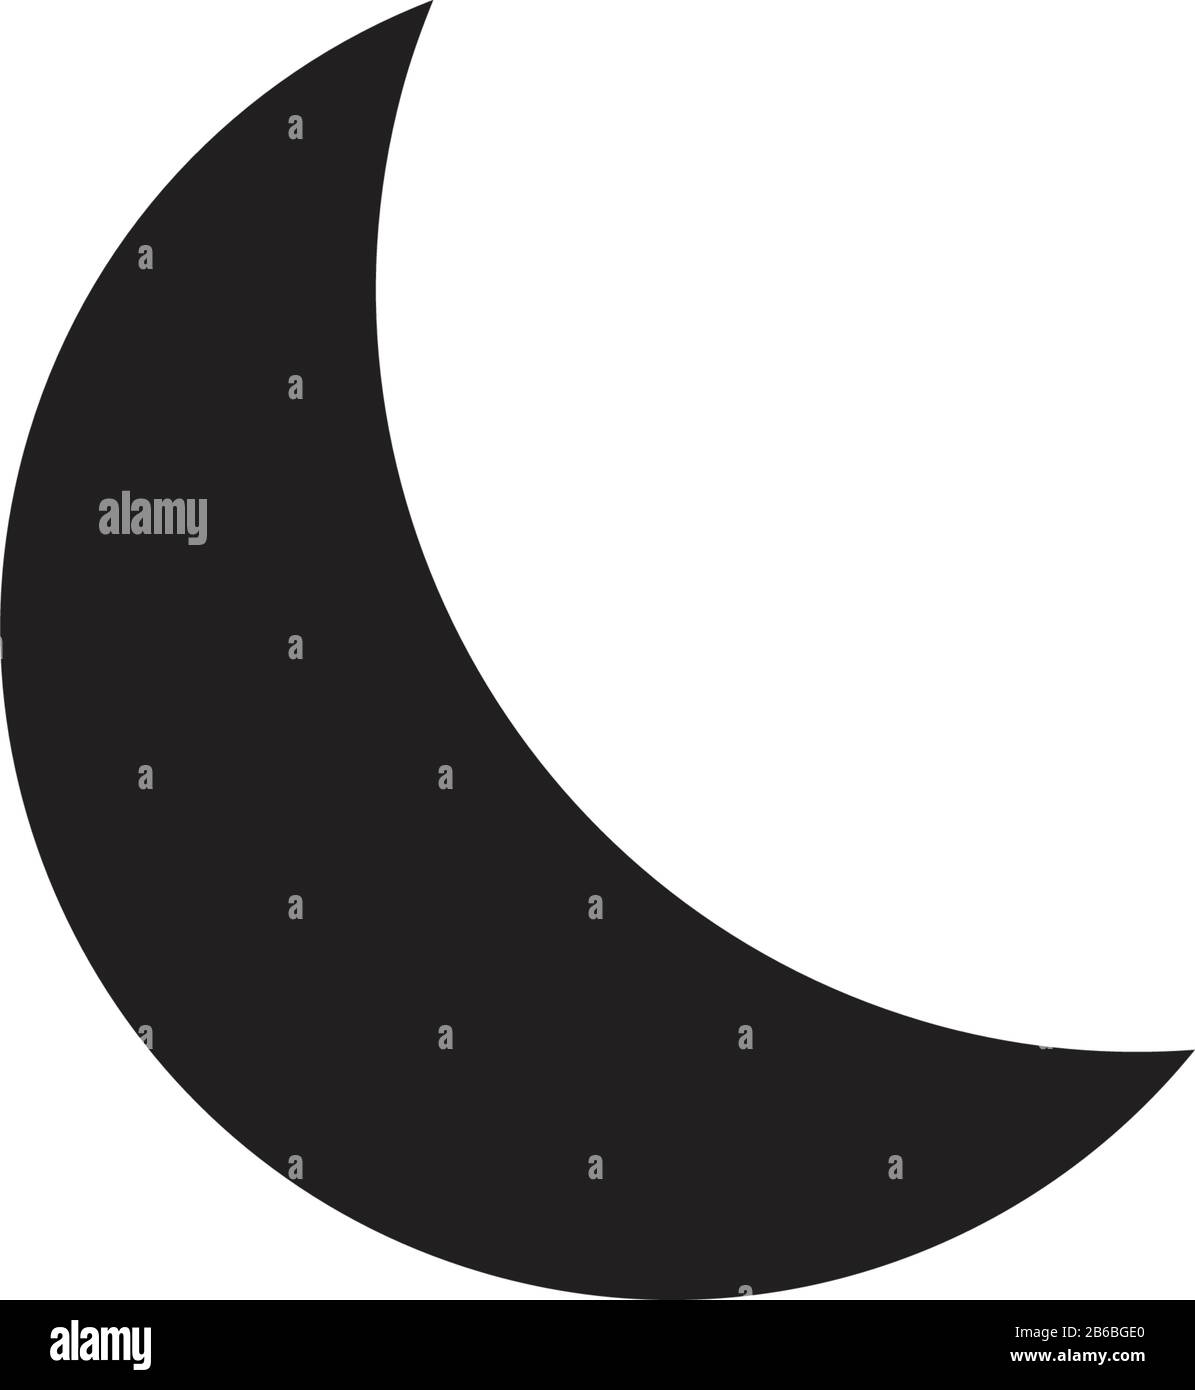 crescent moon evening or nighttime line art for apps and websites night mode stock vector illustration isolated on white background stock vector image art alamy alamy